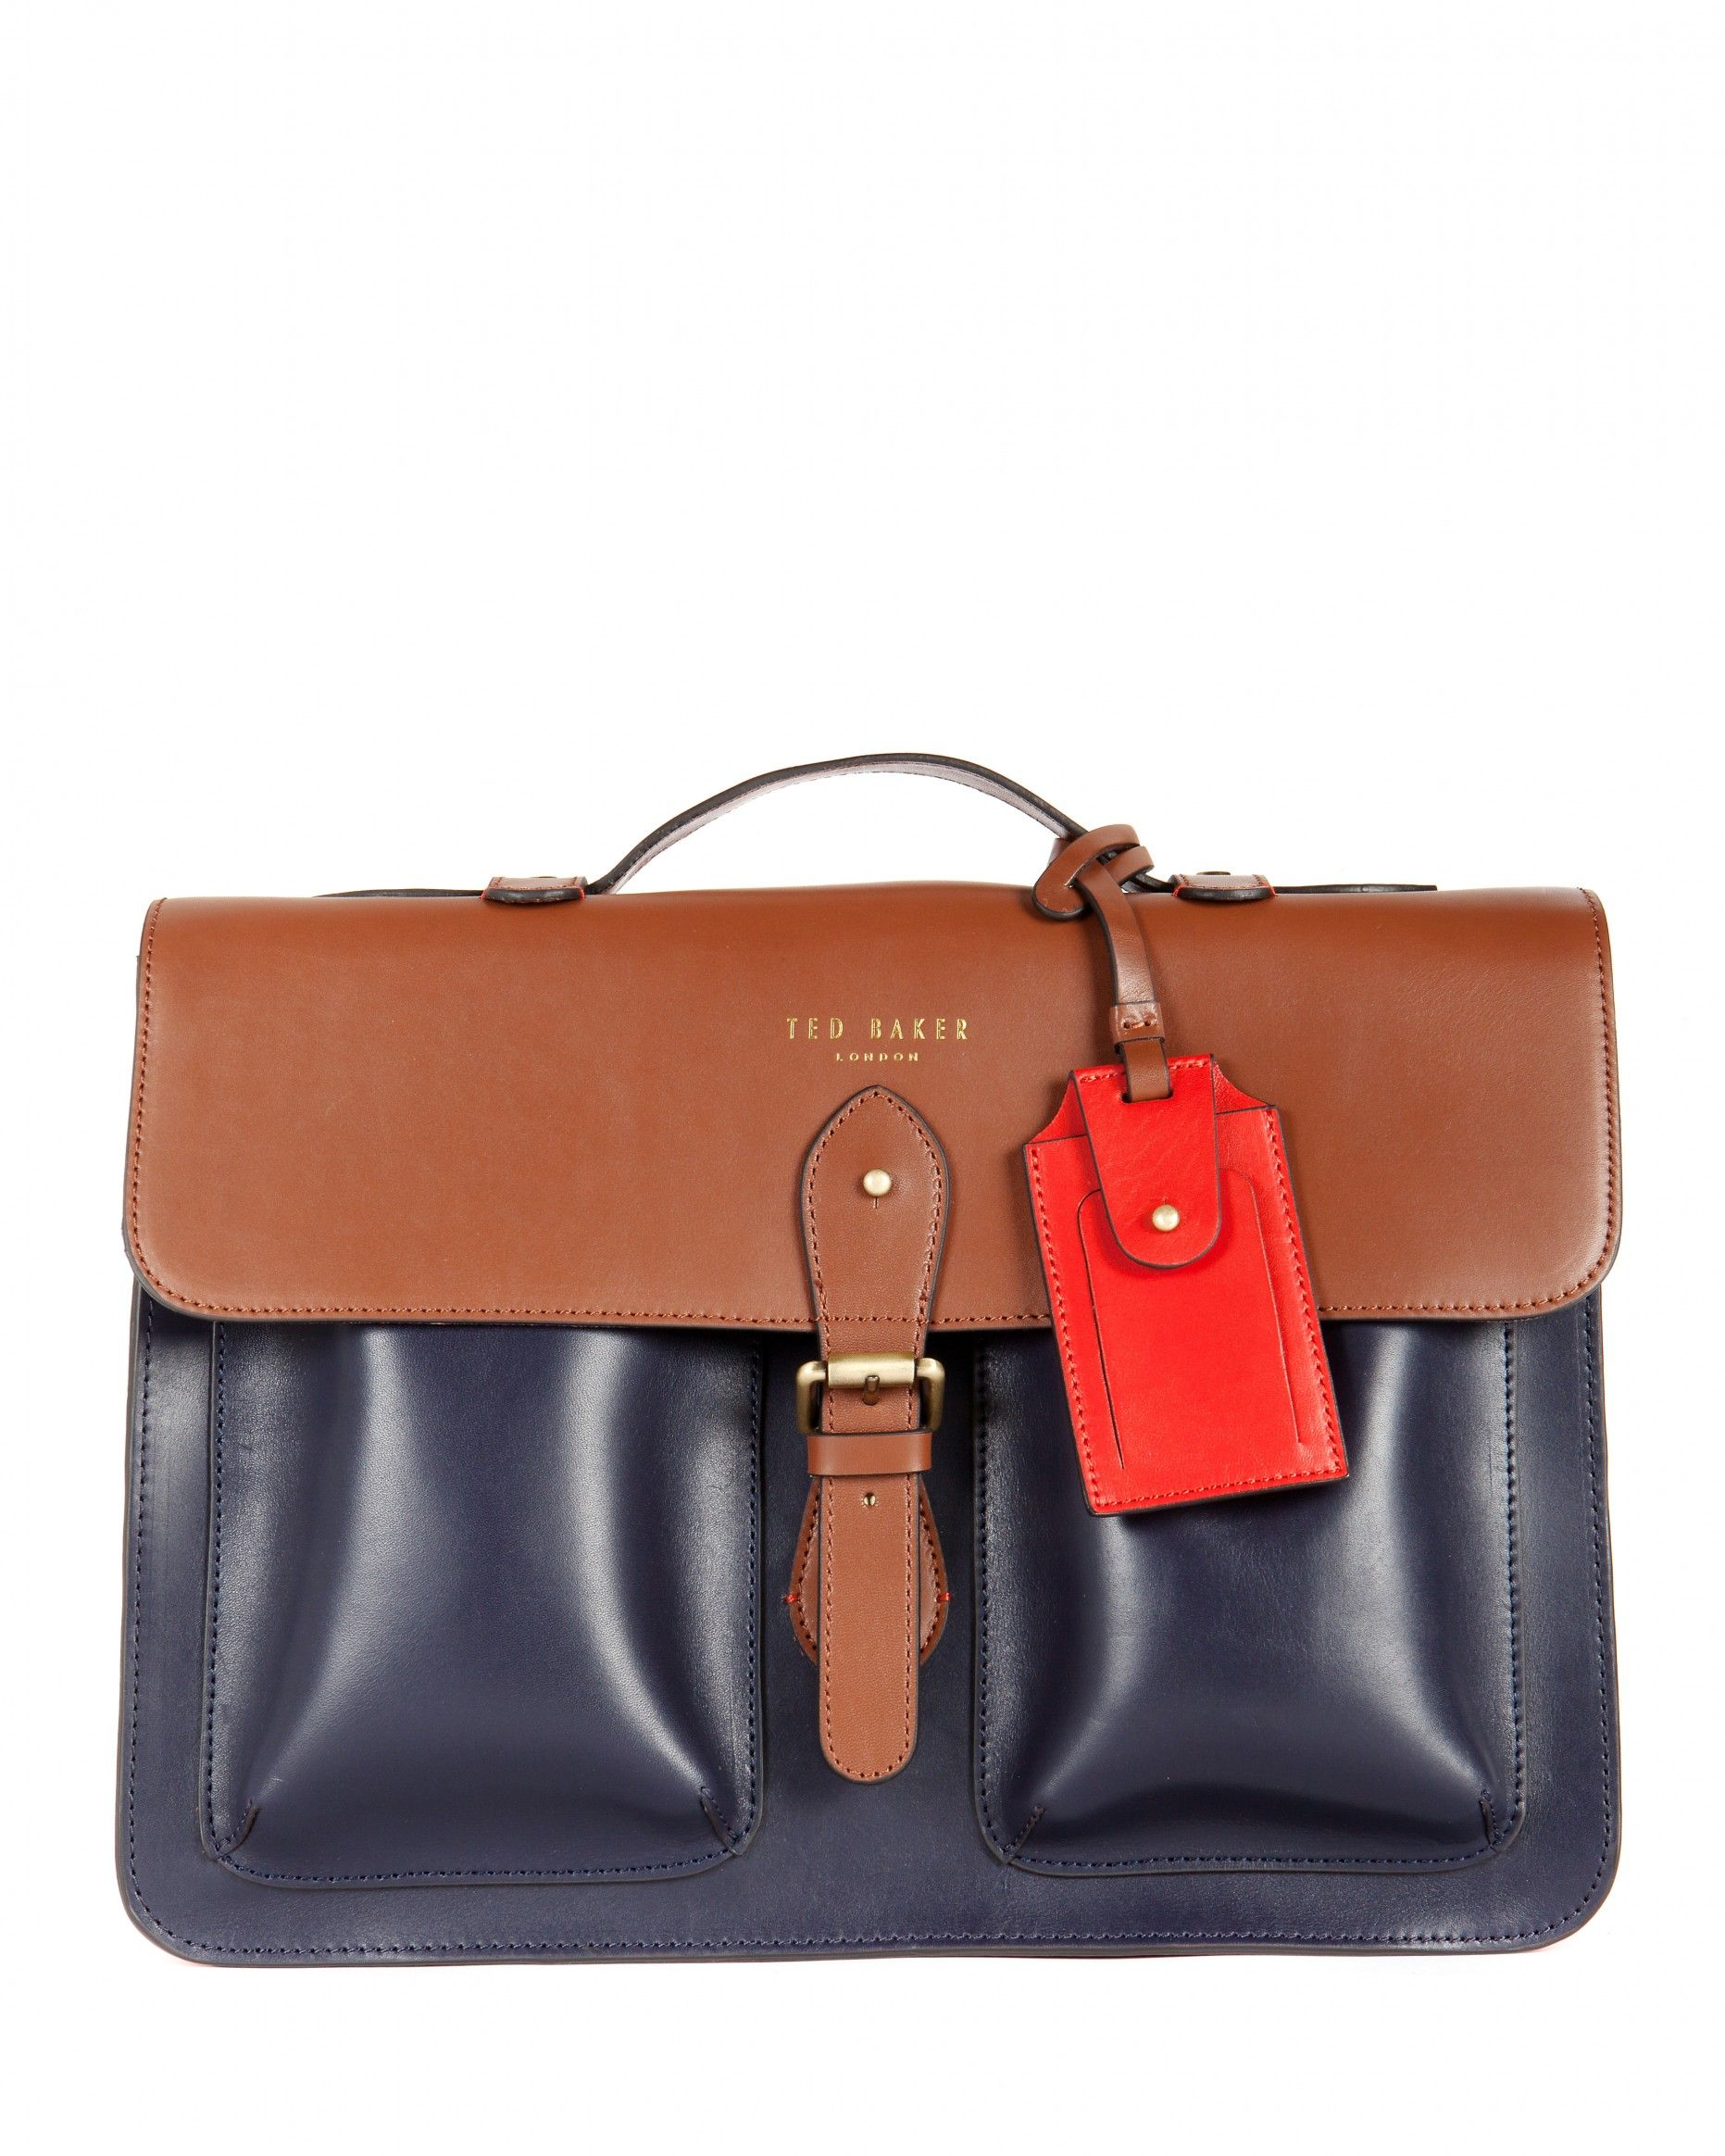 4bef1e61c2b61d Mixed leather satchel - HARLEMM - Ted Baker  345